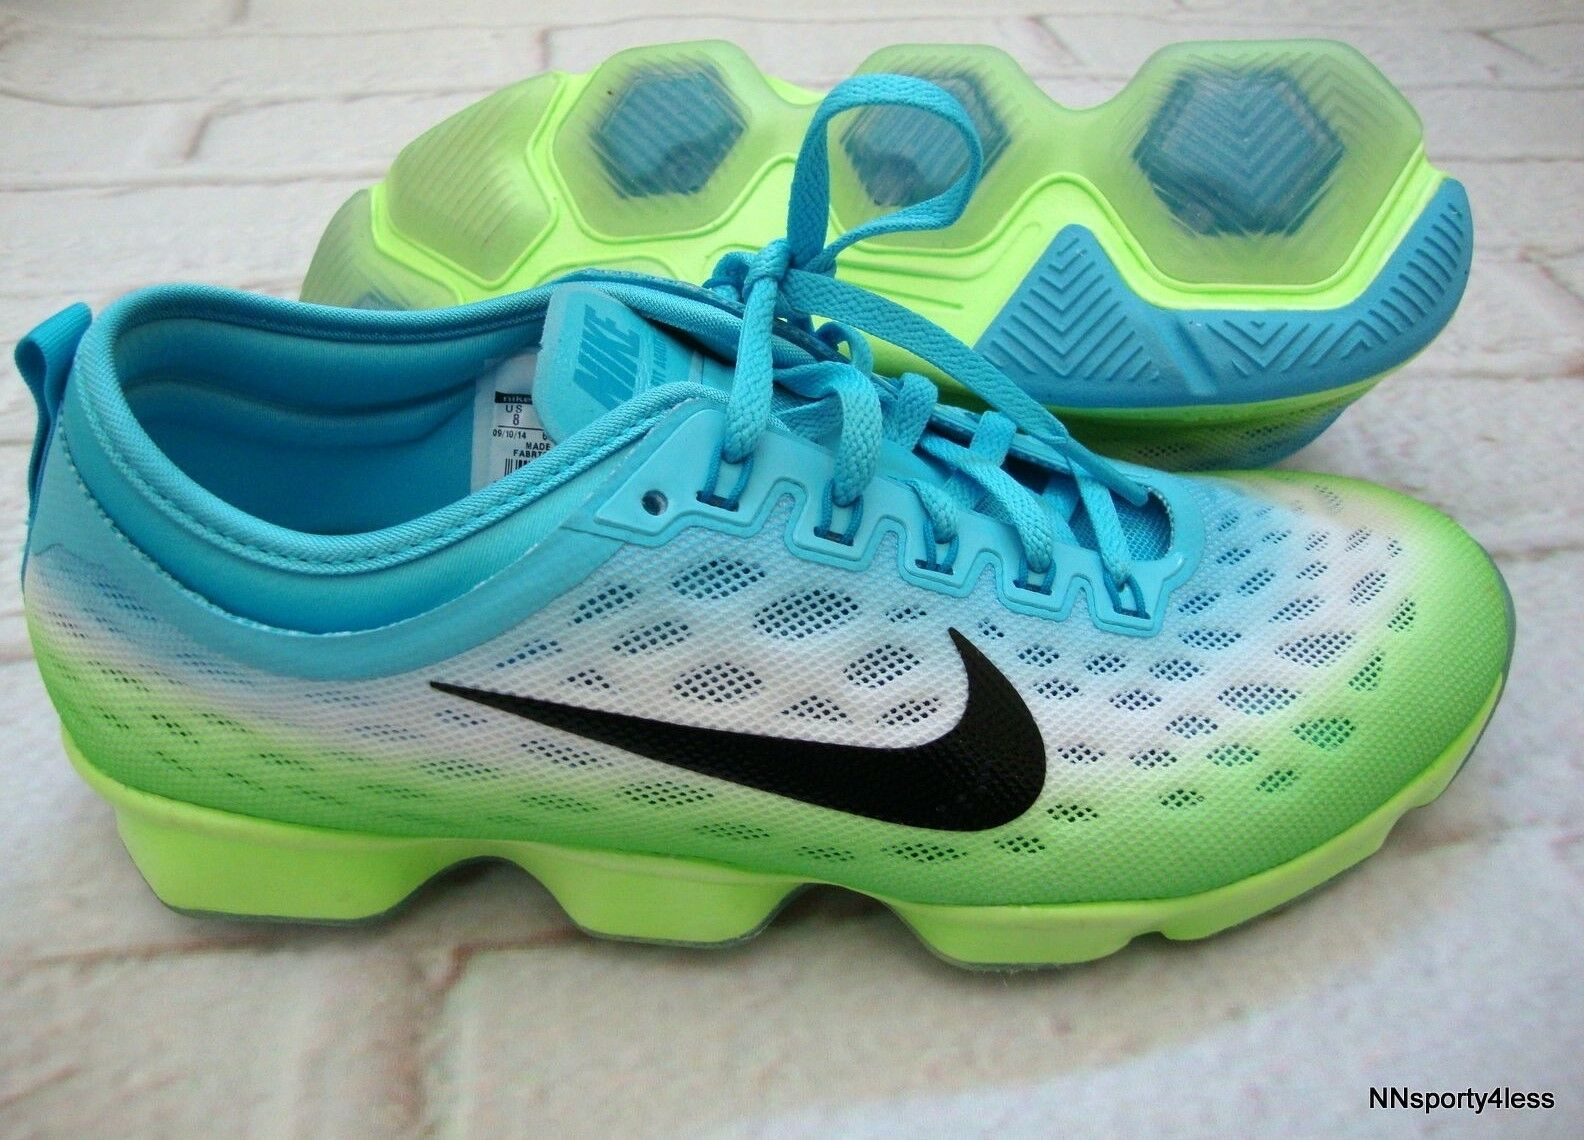 ca2ab75f7cec5 Nike 684984 Zoom Zoom Zoom Fit Agility  130 Women s Training Shoes Running  More Colors e297b5